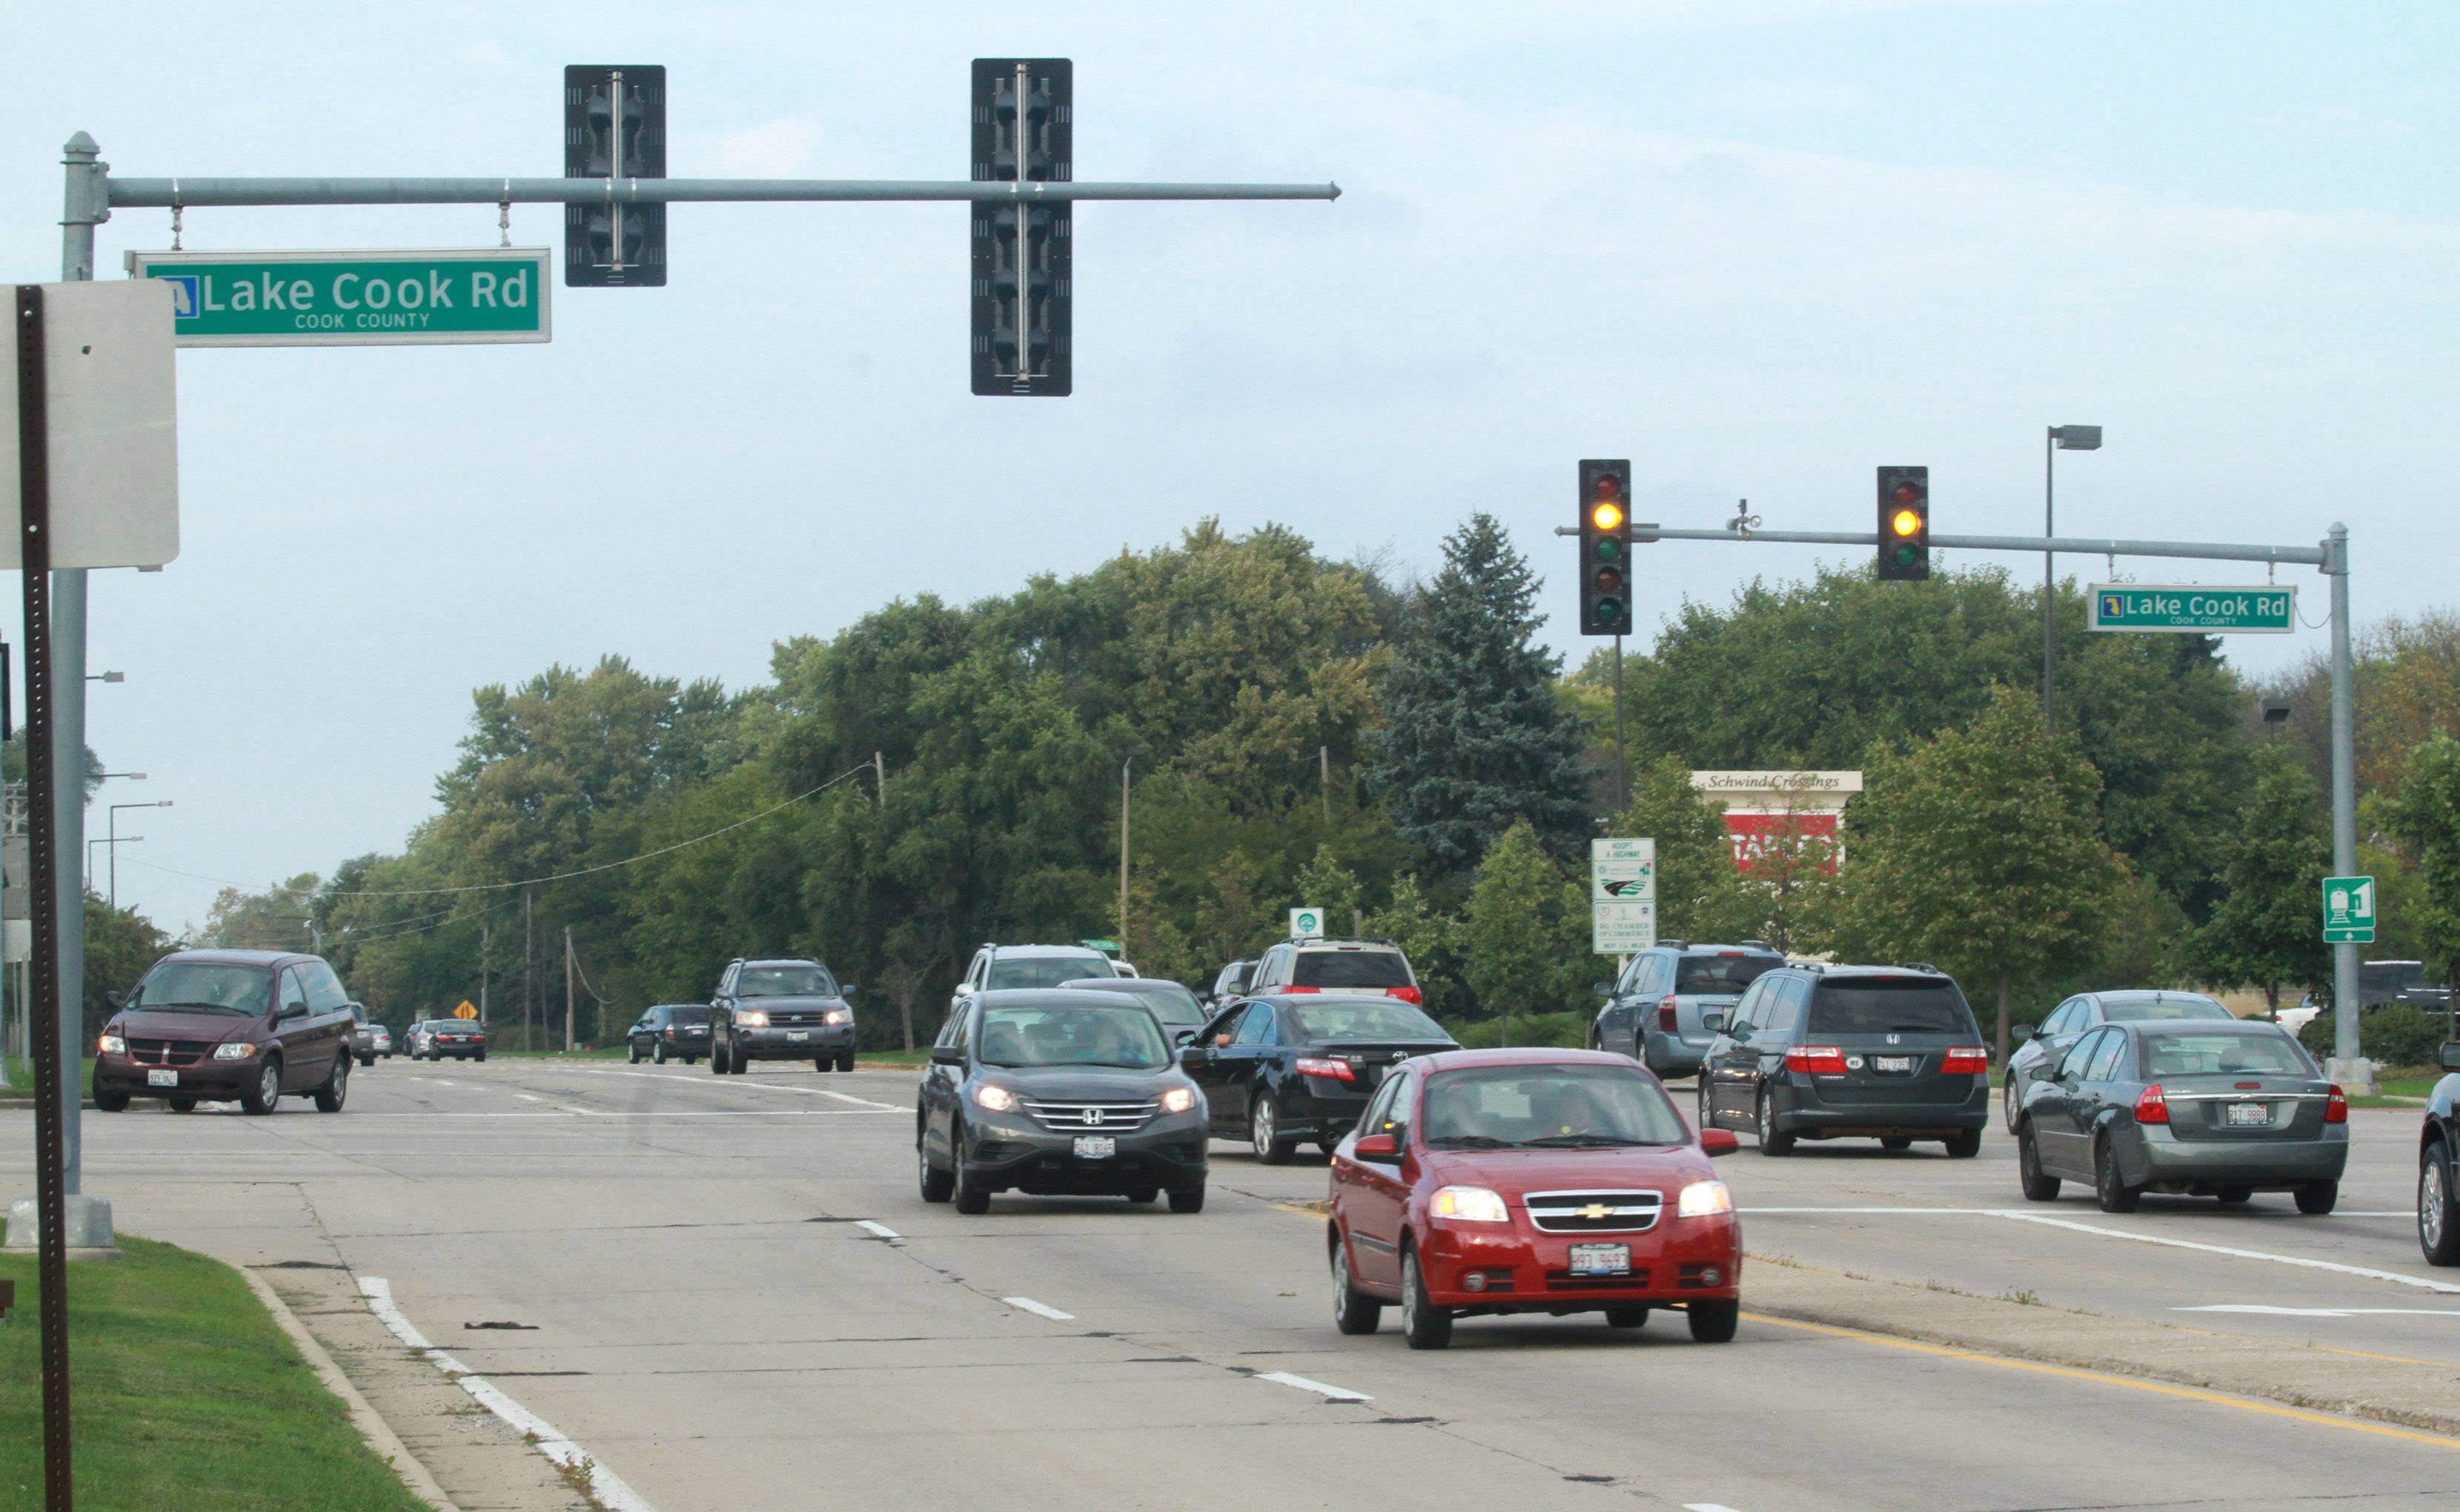 Buffalo Grove officials this week agreed to ease some traffic restrictions near Lake-Cook and Weiland roads that were designed to discourage drivers from avoiding the heavily traveled intersection by using smaller roads nearby.